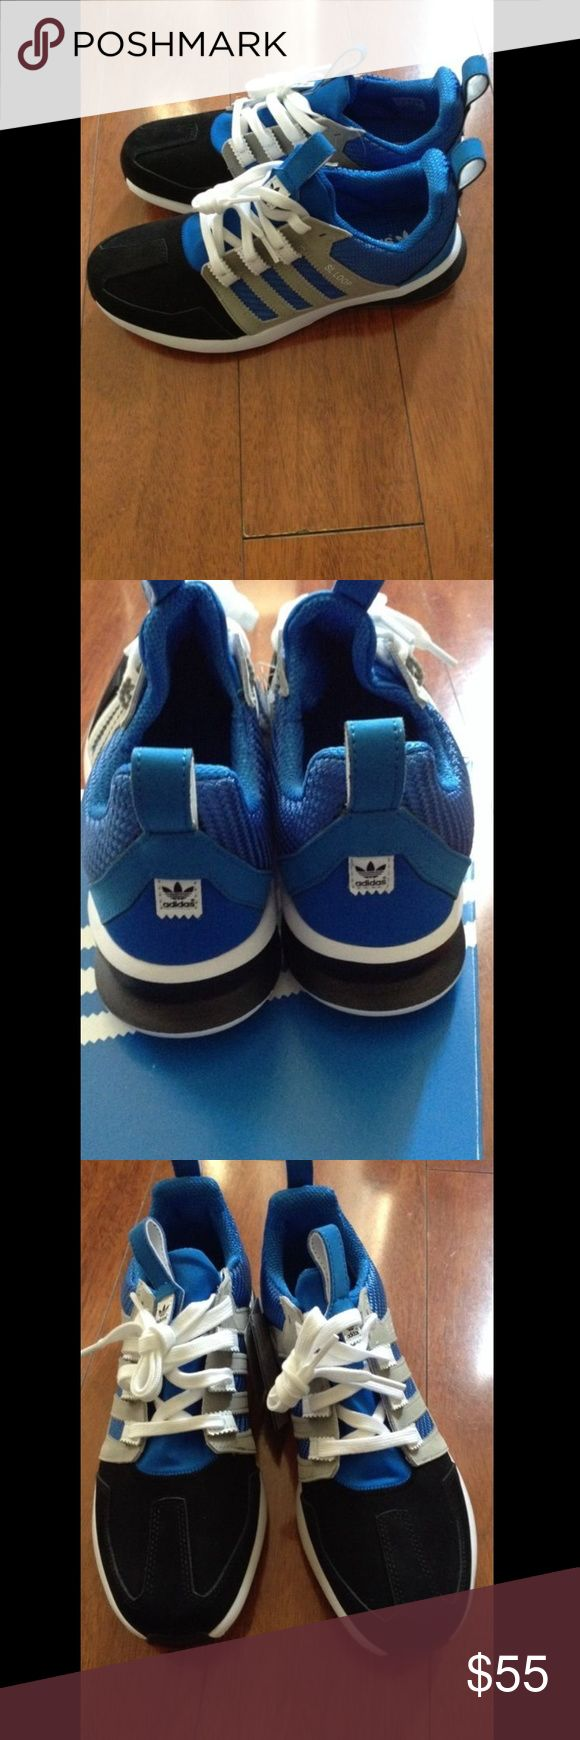 Men Adidas running shoes 👟 These are new, still in the box, offers are welcomed. If u have any questions feel free to ask. No returns so please ask all the question before purchasing. These are men shoes. Adidas Shoes Sneakers